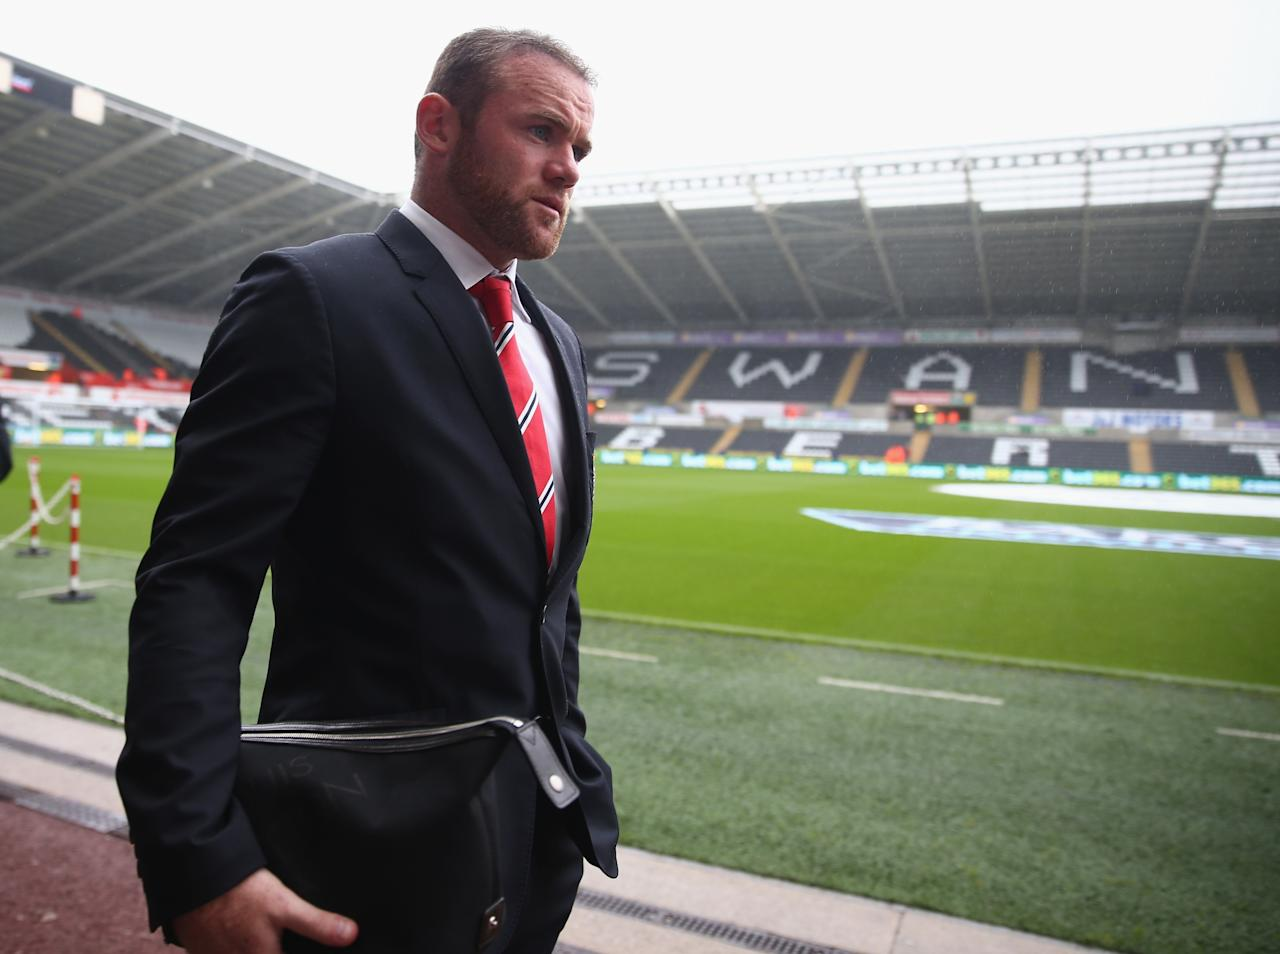 SWANSEA, WALES - AUGUST 17: Wayne Rooney of Manchester United walks to the dressing room ahead of the Barclays Premier League match between Swansea City and Manchester United at the Liberty Stadium on August 17, 2013 in Swansea, Wales. (Photo by Michael Steele/Getty Images)